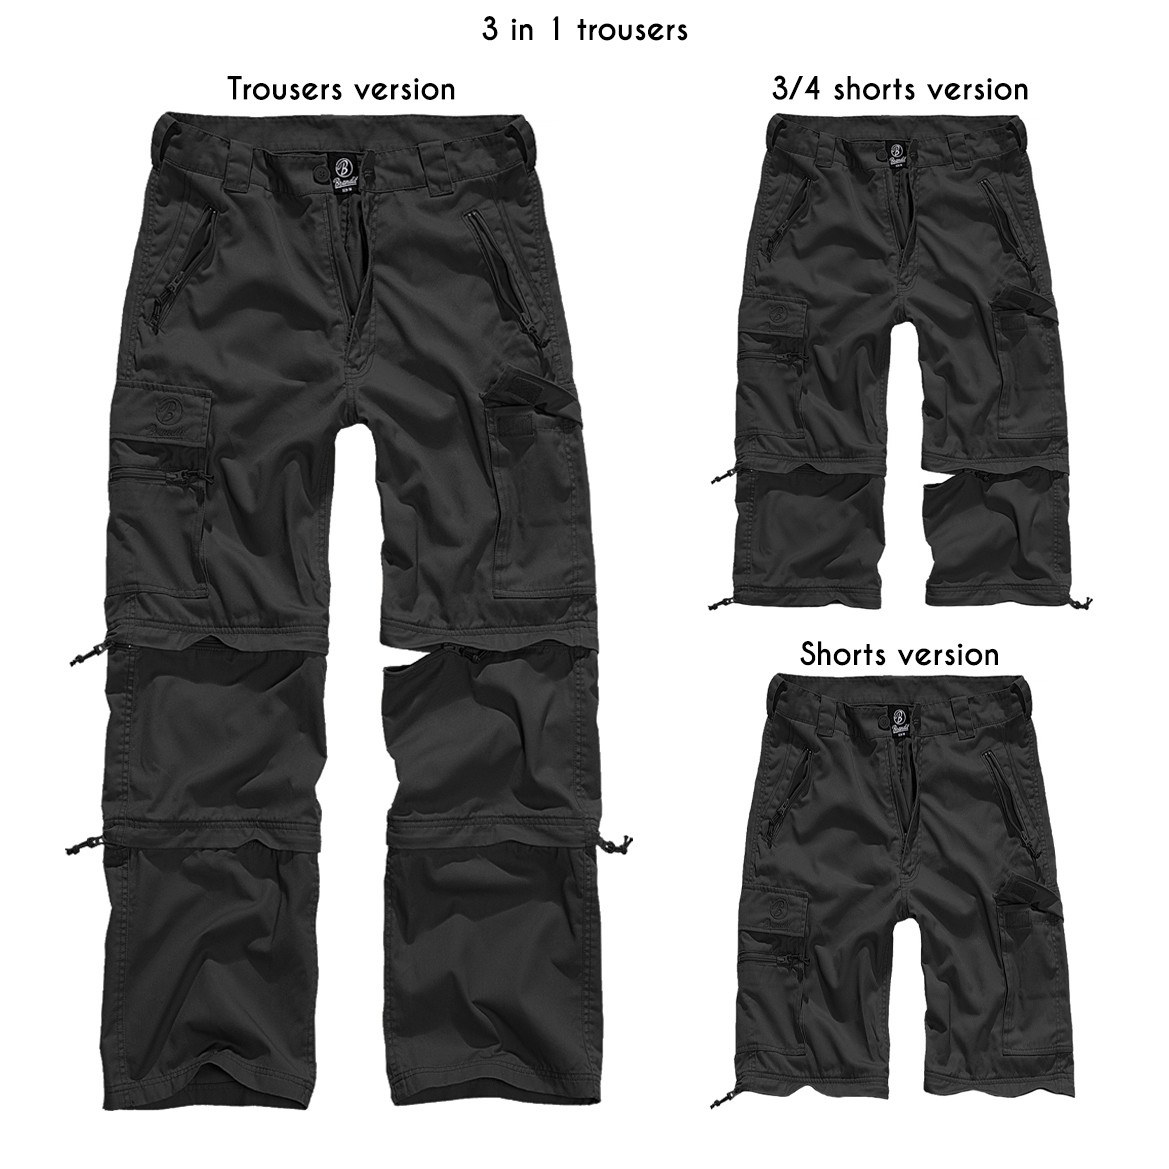 """Savannah Cargo"" 3in1 combat trousers, Black"